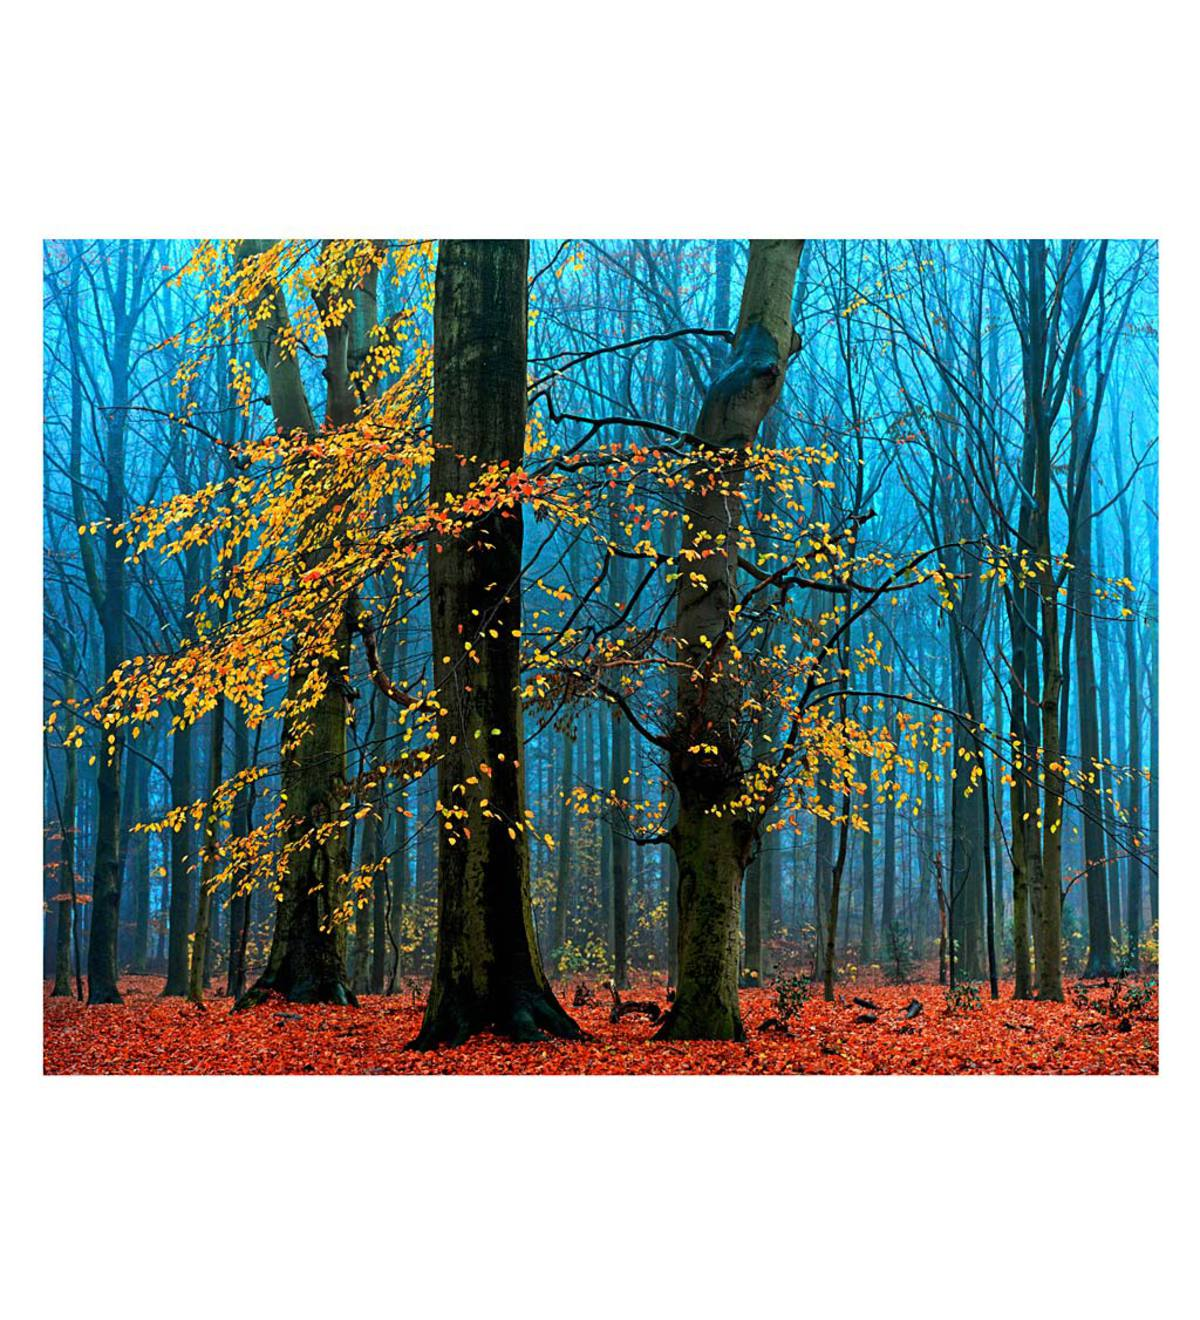 Colorful Autumn Forest Indoor/Outdoor Wall Art on Canvas